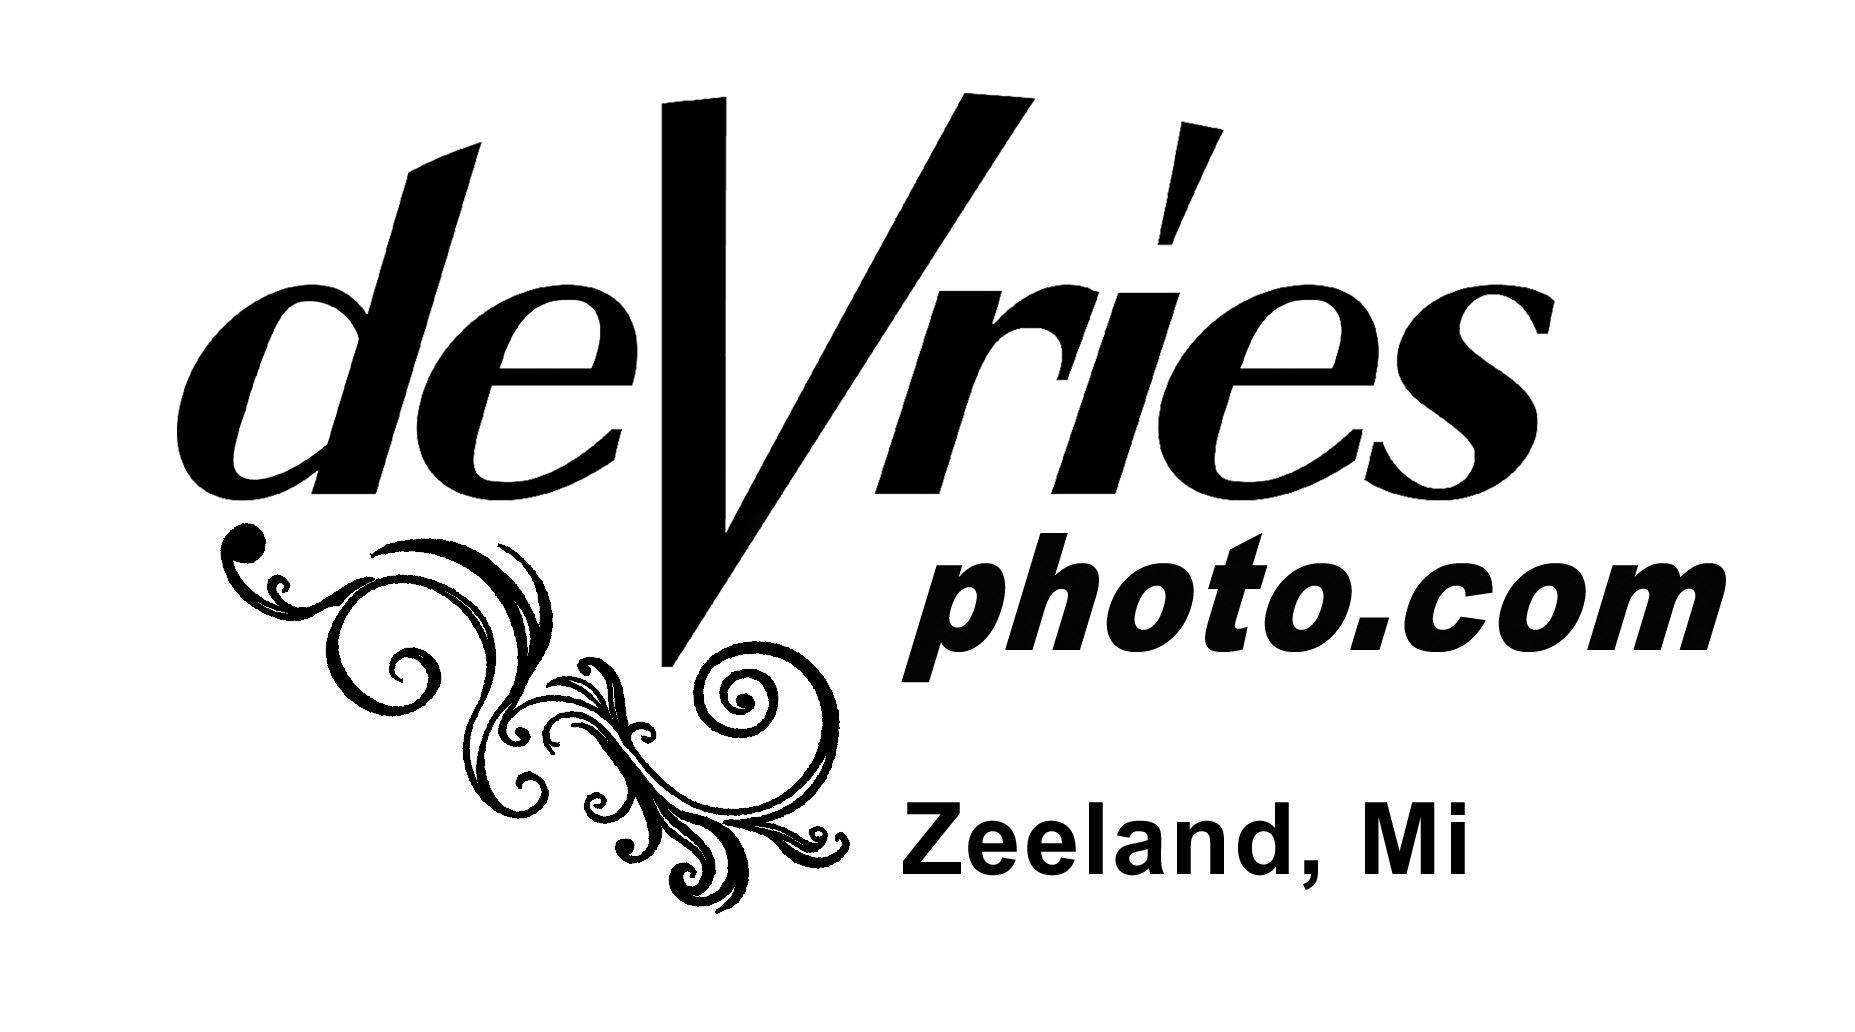 devries photodotcom logo black w curly